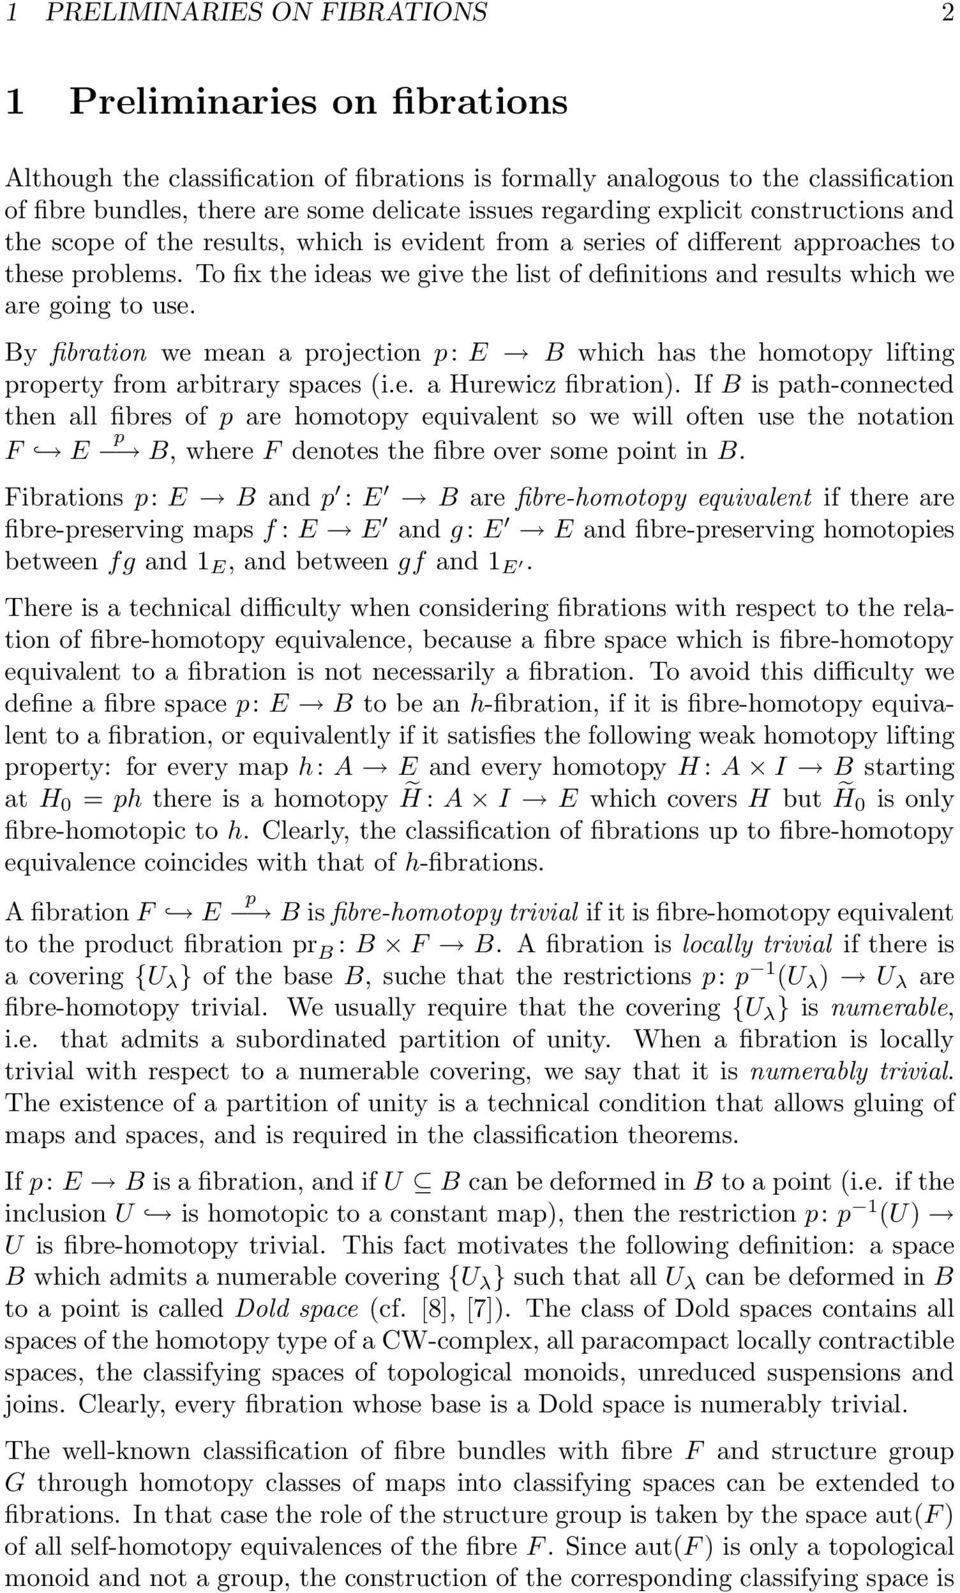 To fix the ideas we give the list of definitions and results which we are going to use. By fibration we mean a projection p: E B which has the homotopy lifting property from arbitrary spaces (i.e. a Hurewicz fibration).